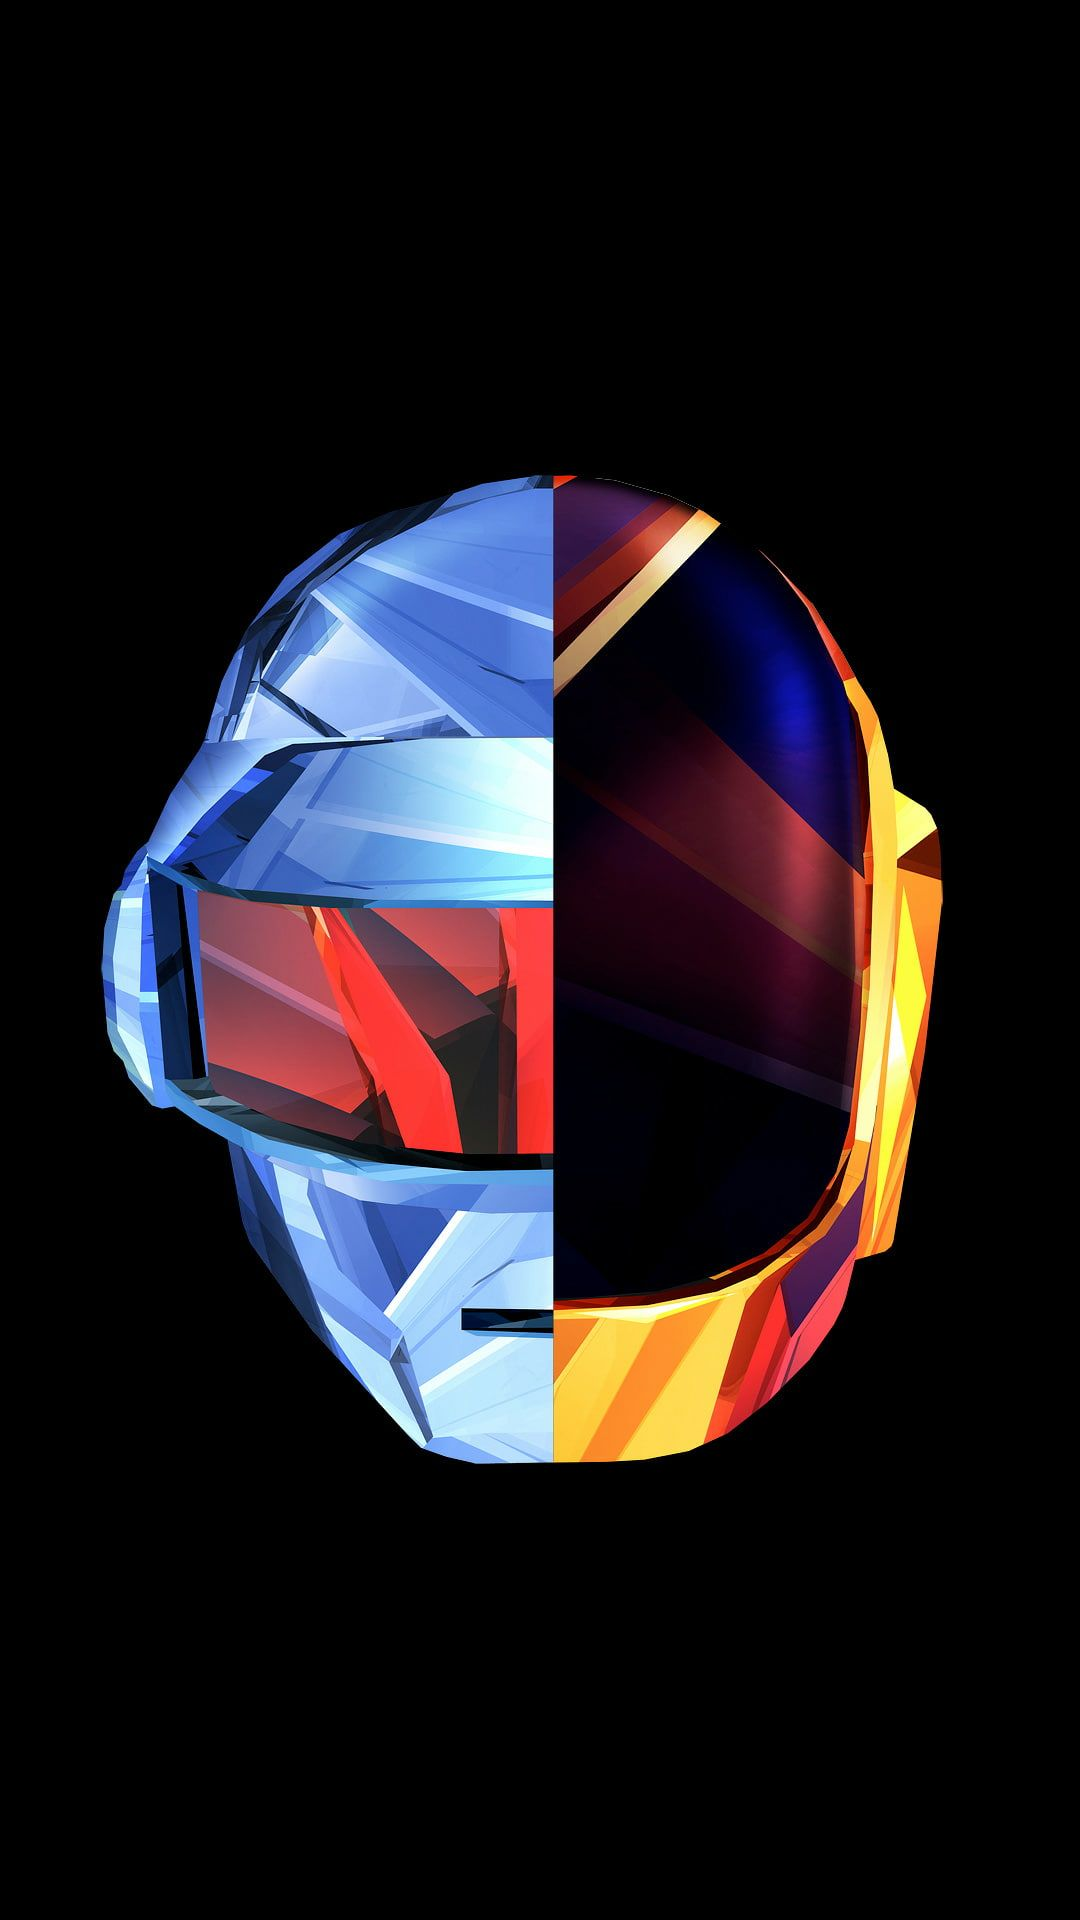 Minimalist Daft Punk Iphone Wallpaper - Wallpaper Download